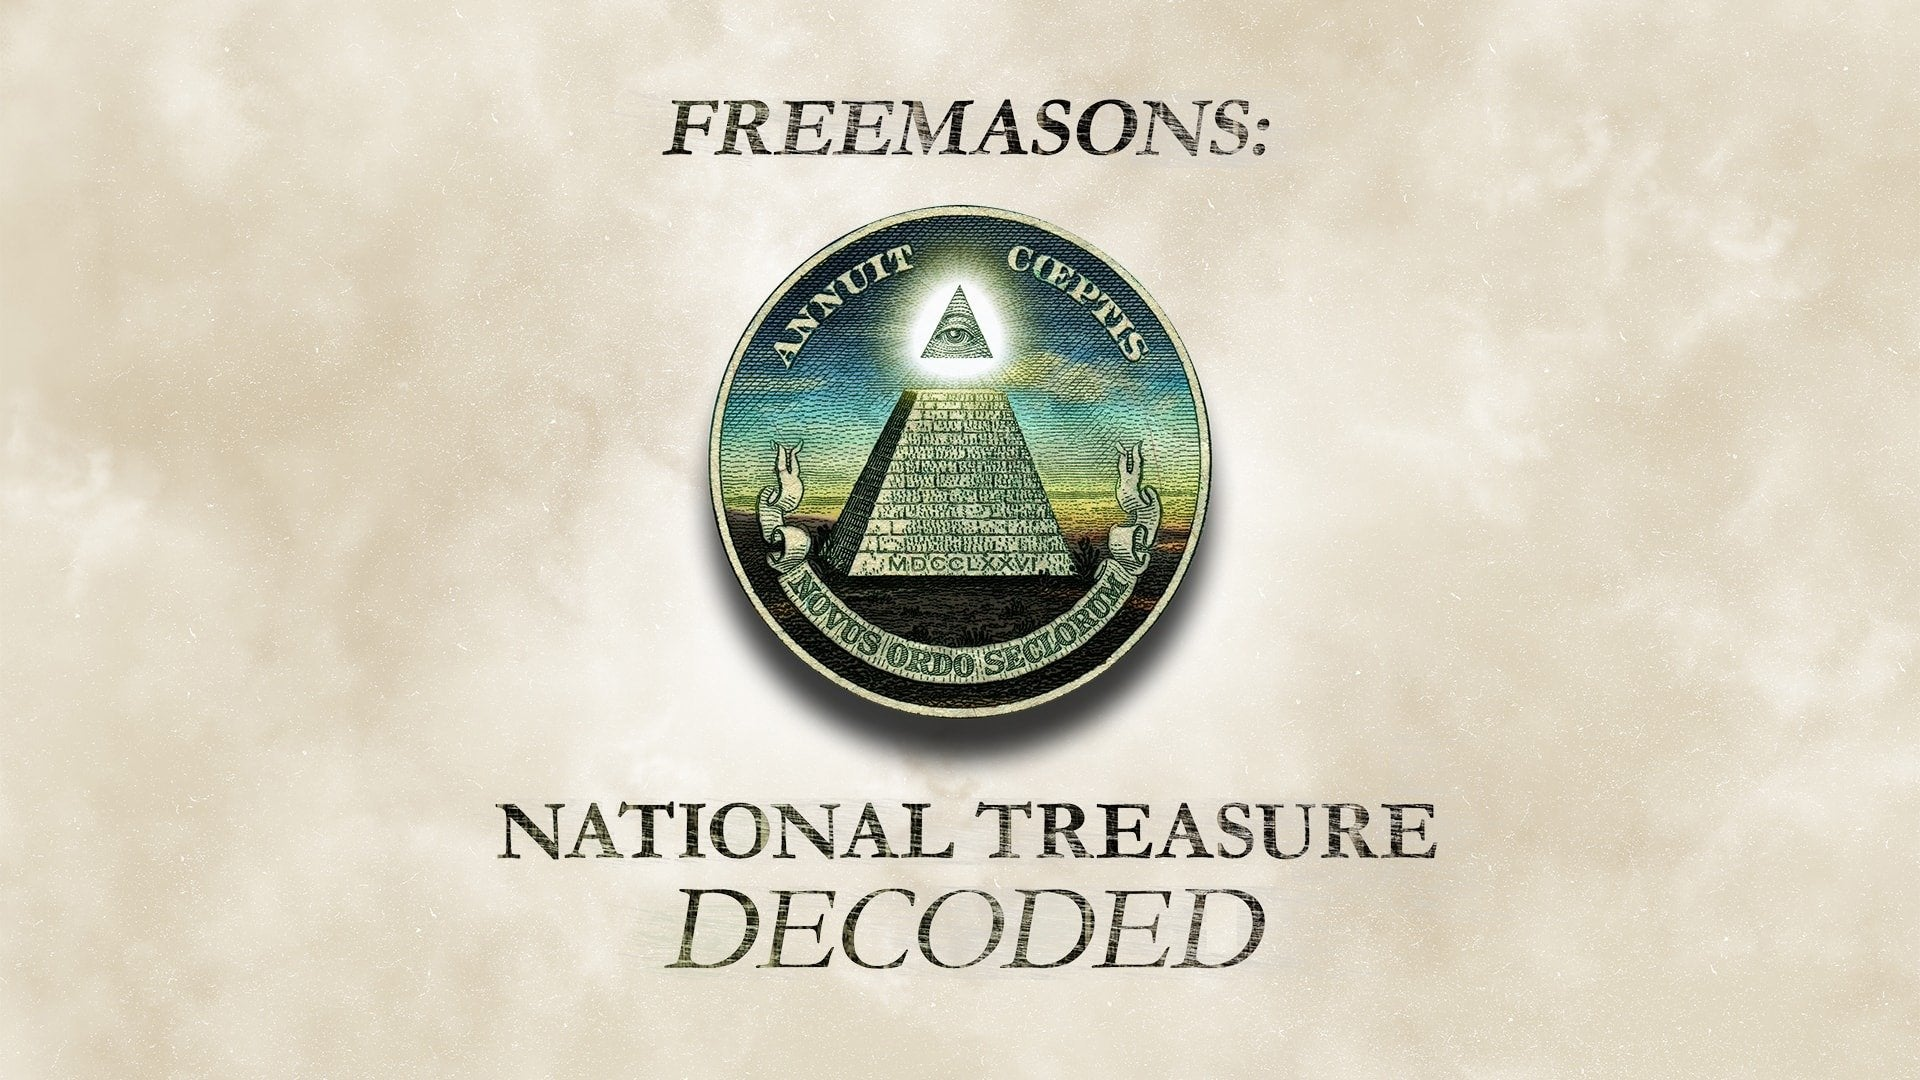 Freemasons: National Treasure Decoded